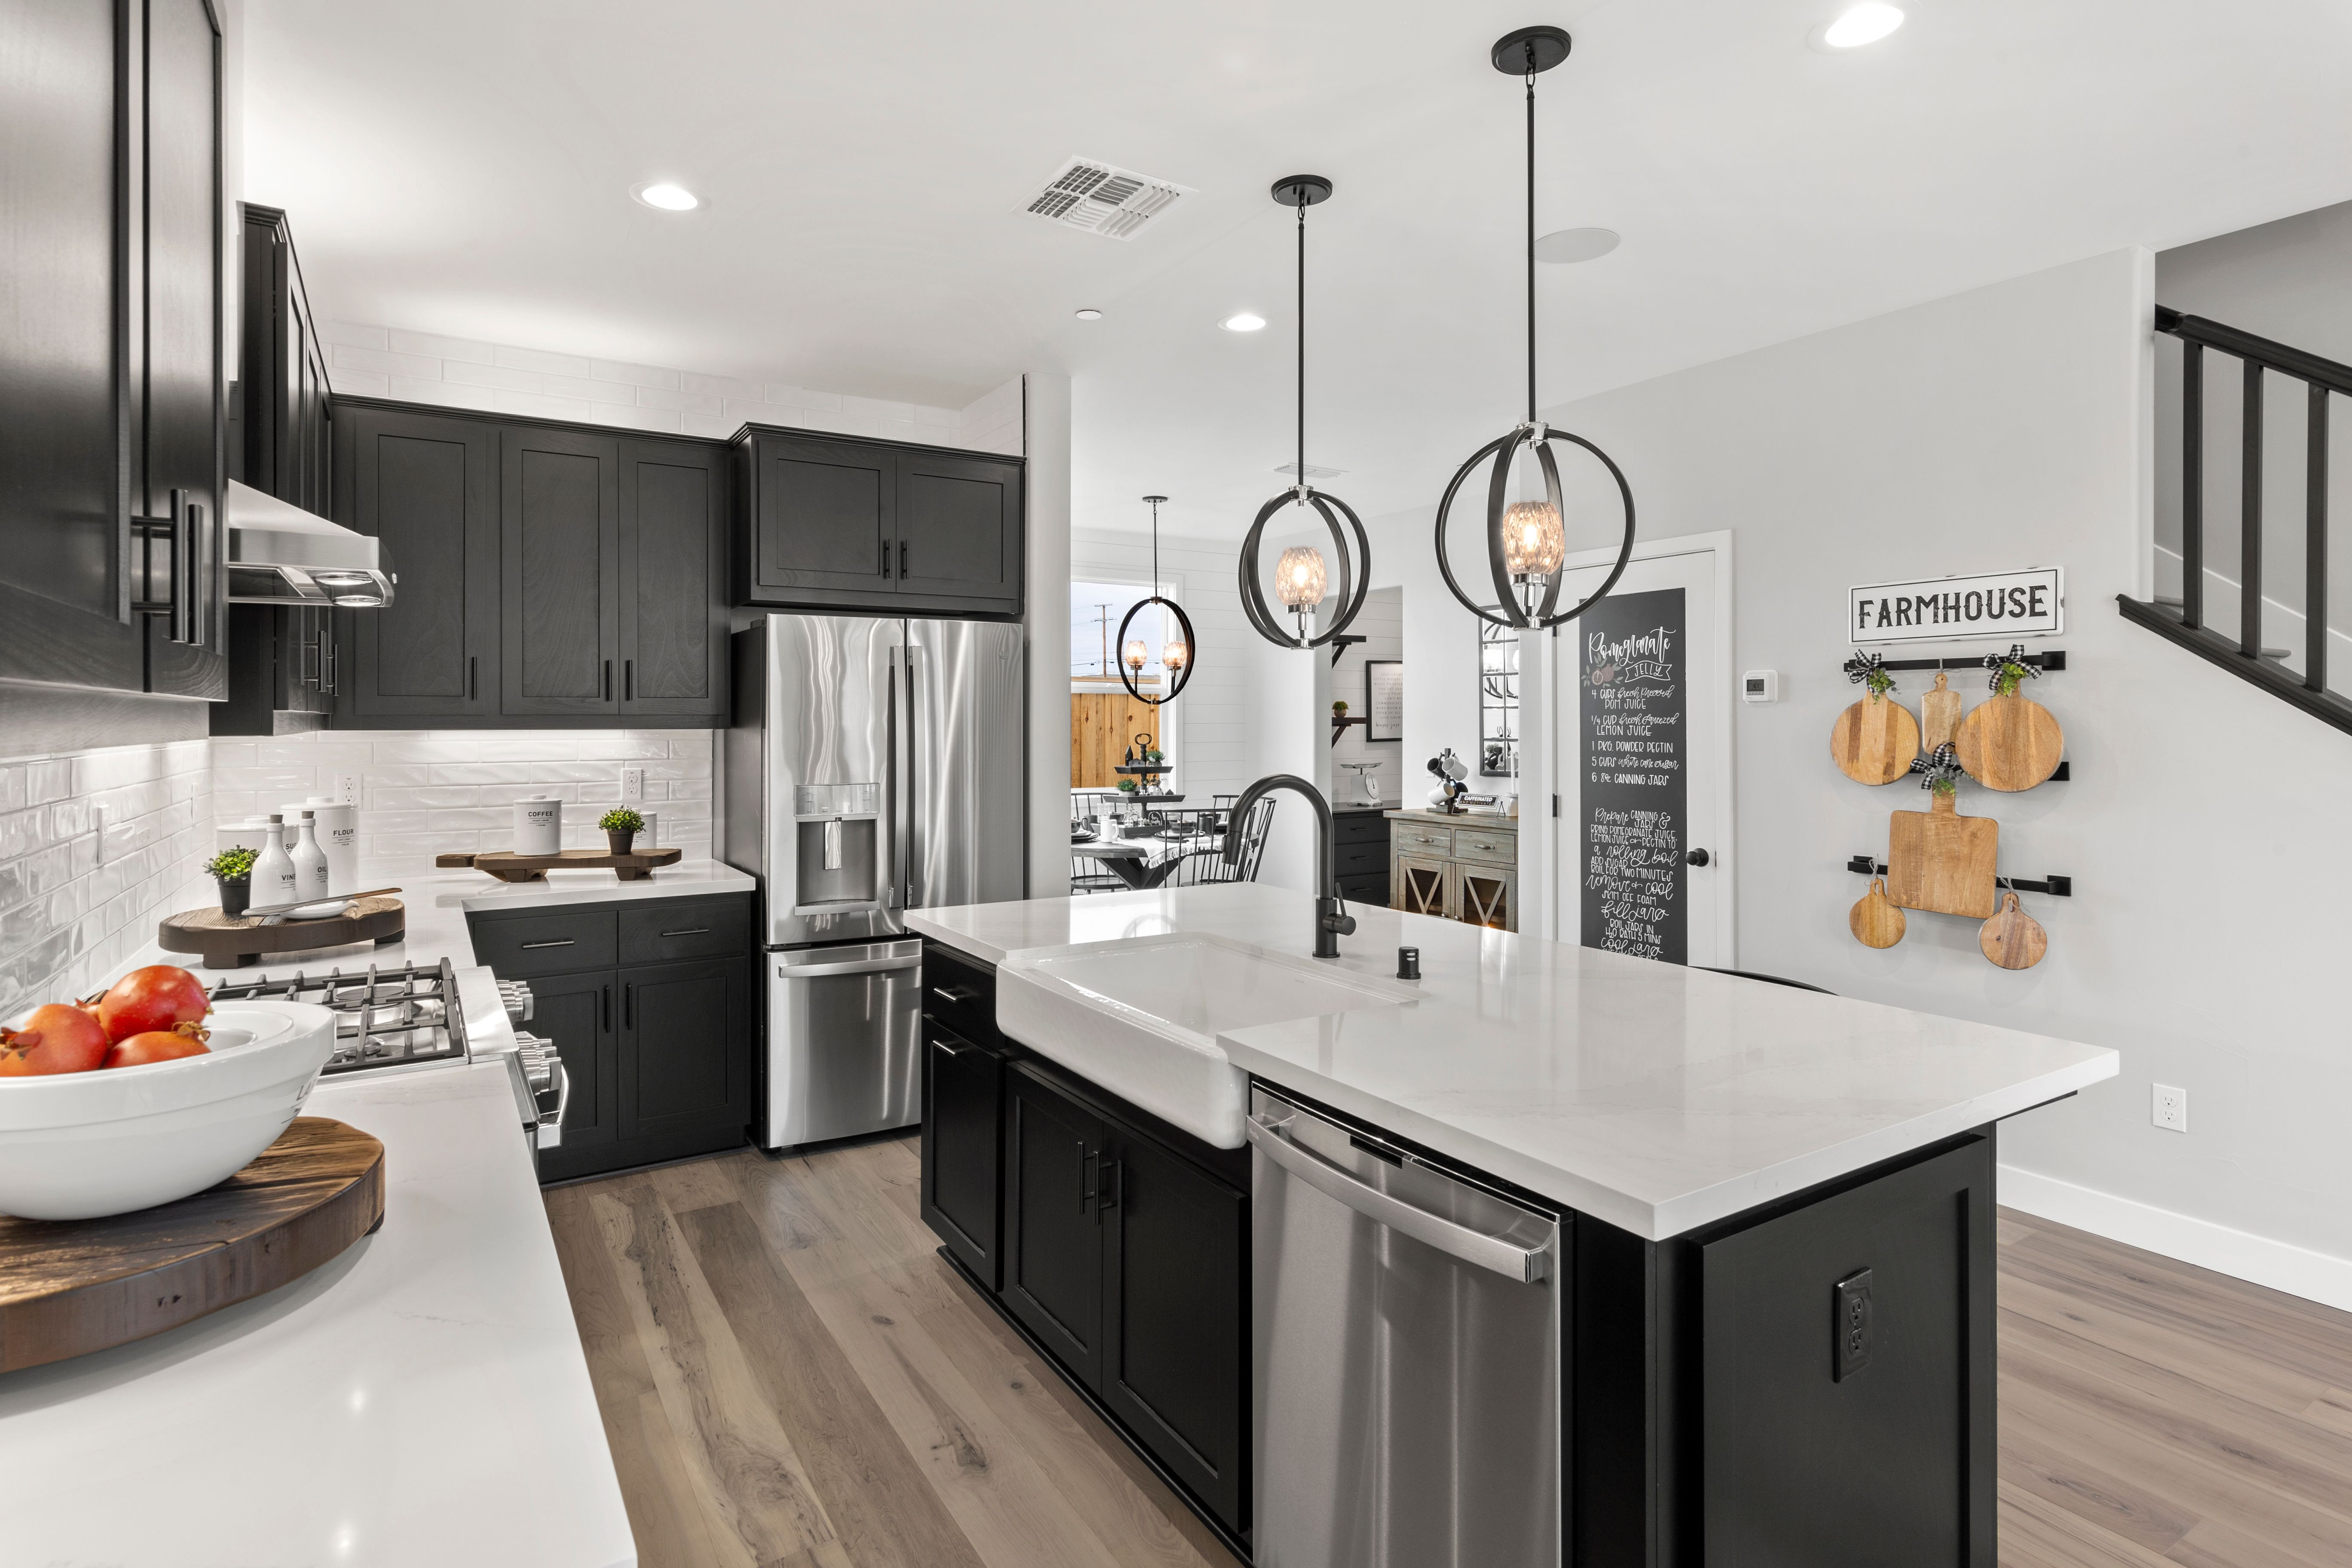 Kitchen featured in the Millstone Residence 2 By BlackPine Communites in Sacramento, CA